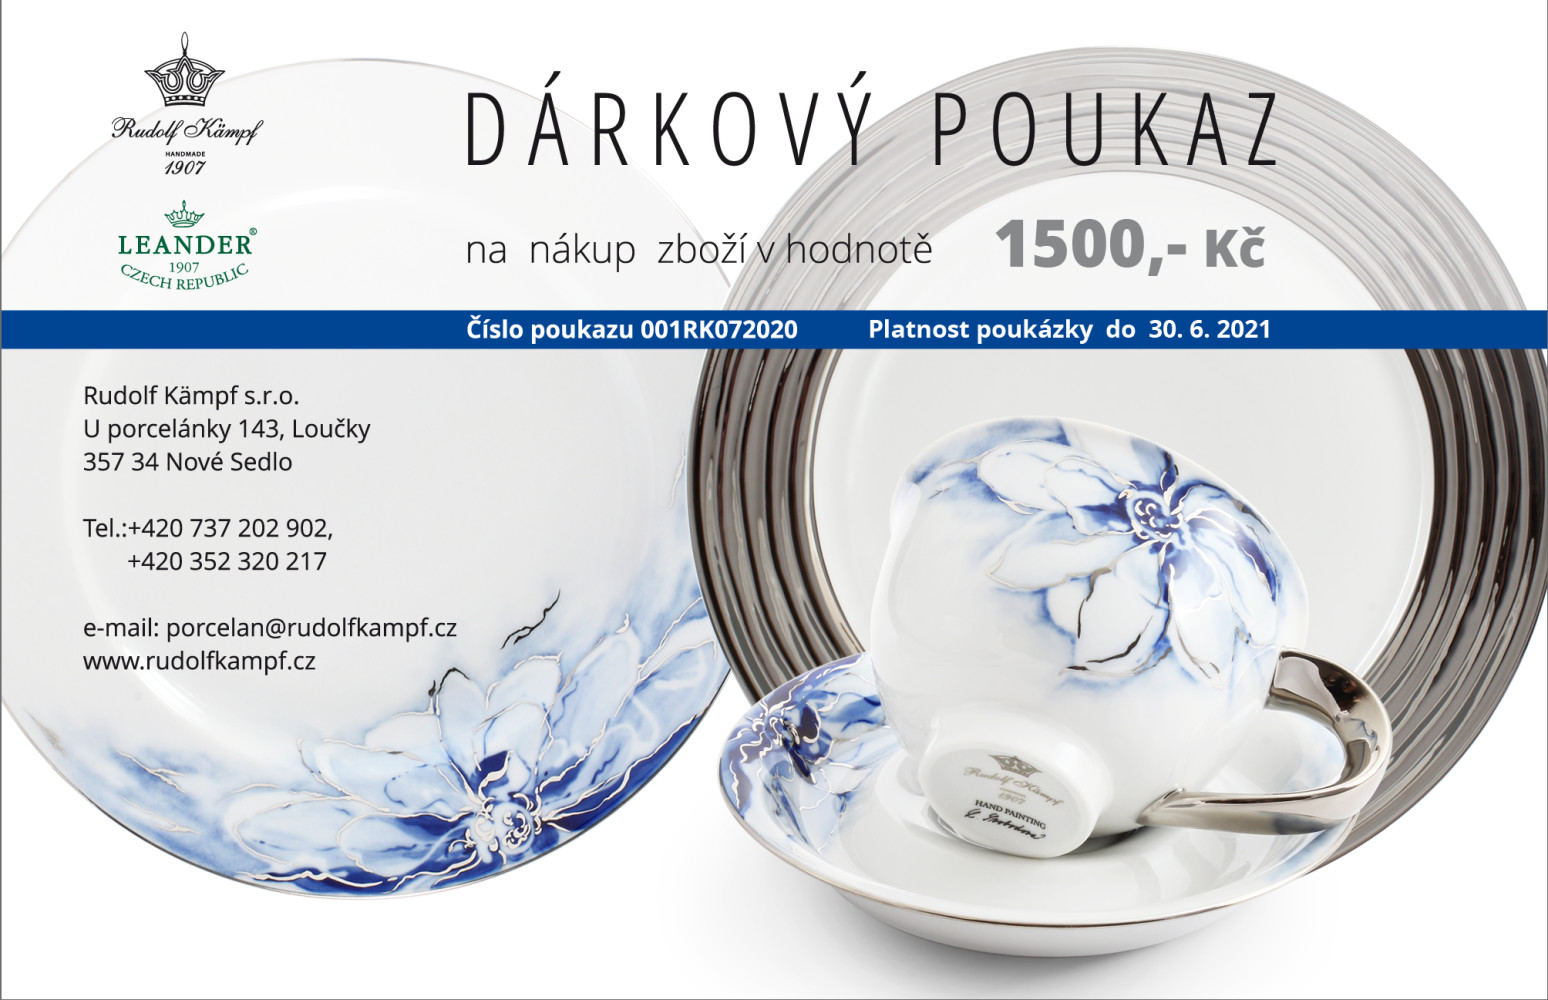 Gift voucher at the amount of CZK 1,500